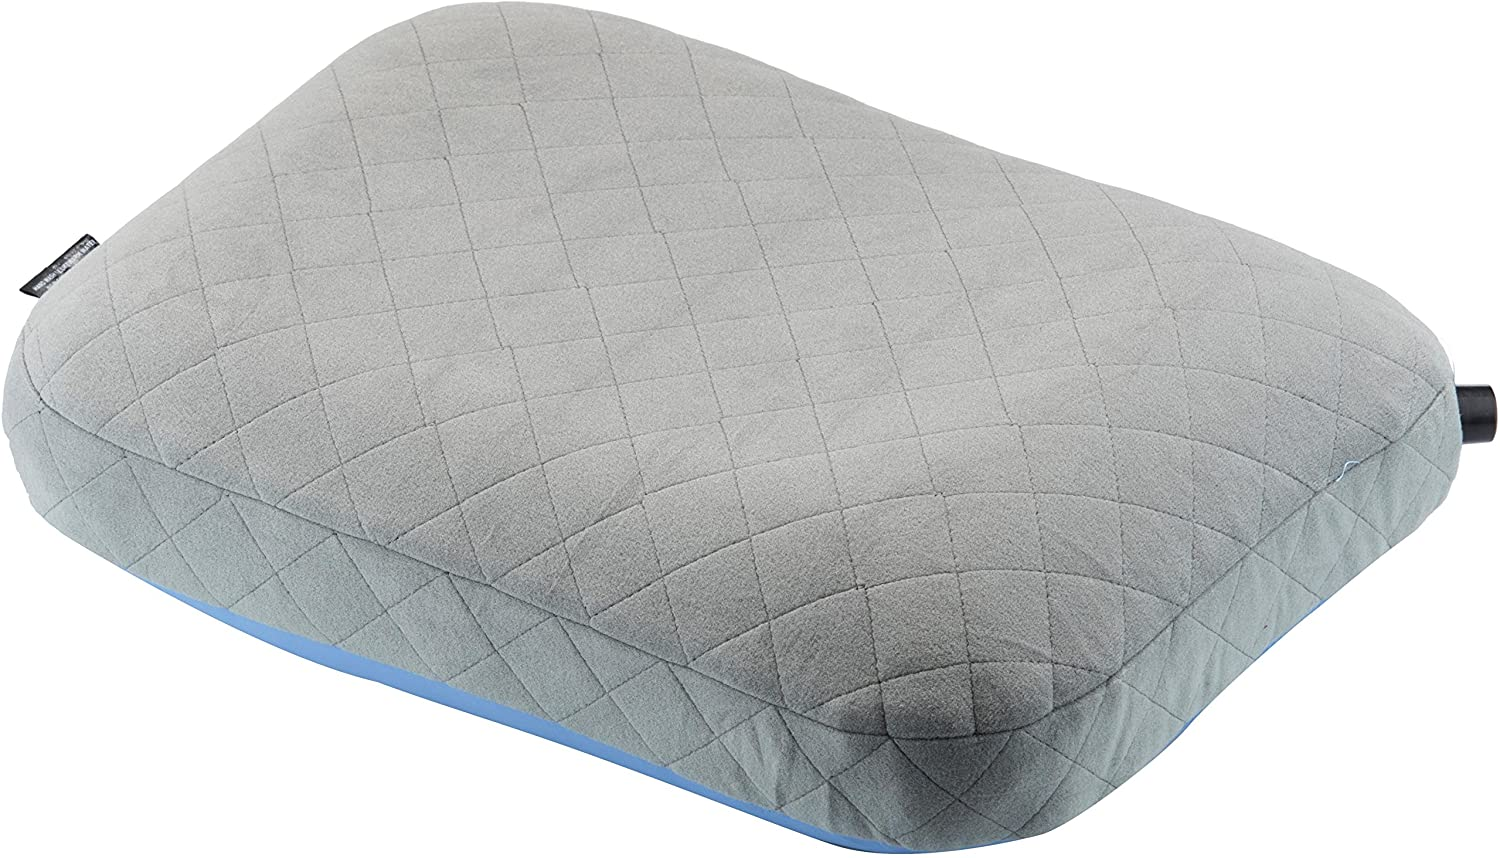 inflatable adjustable air support camping pillow